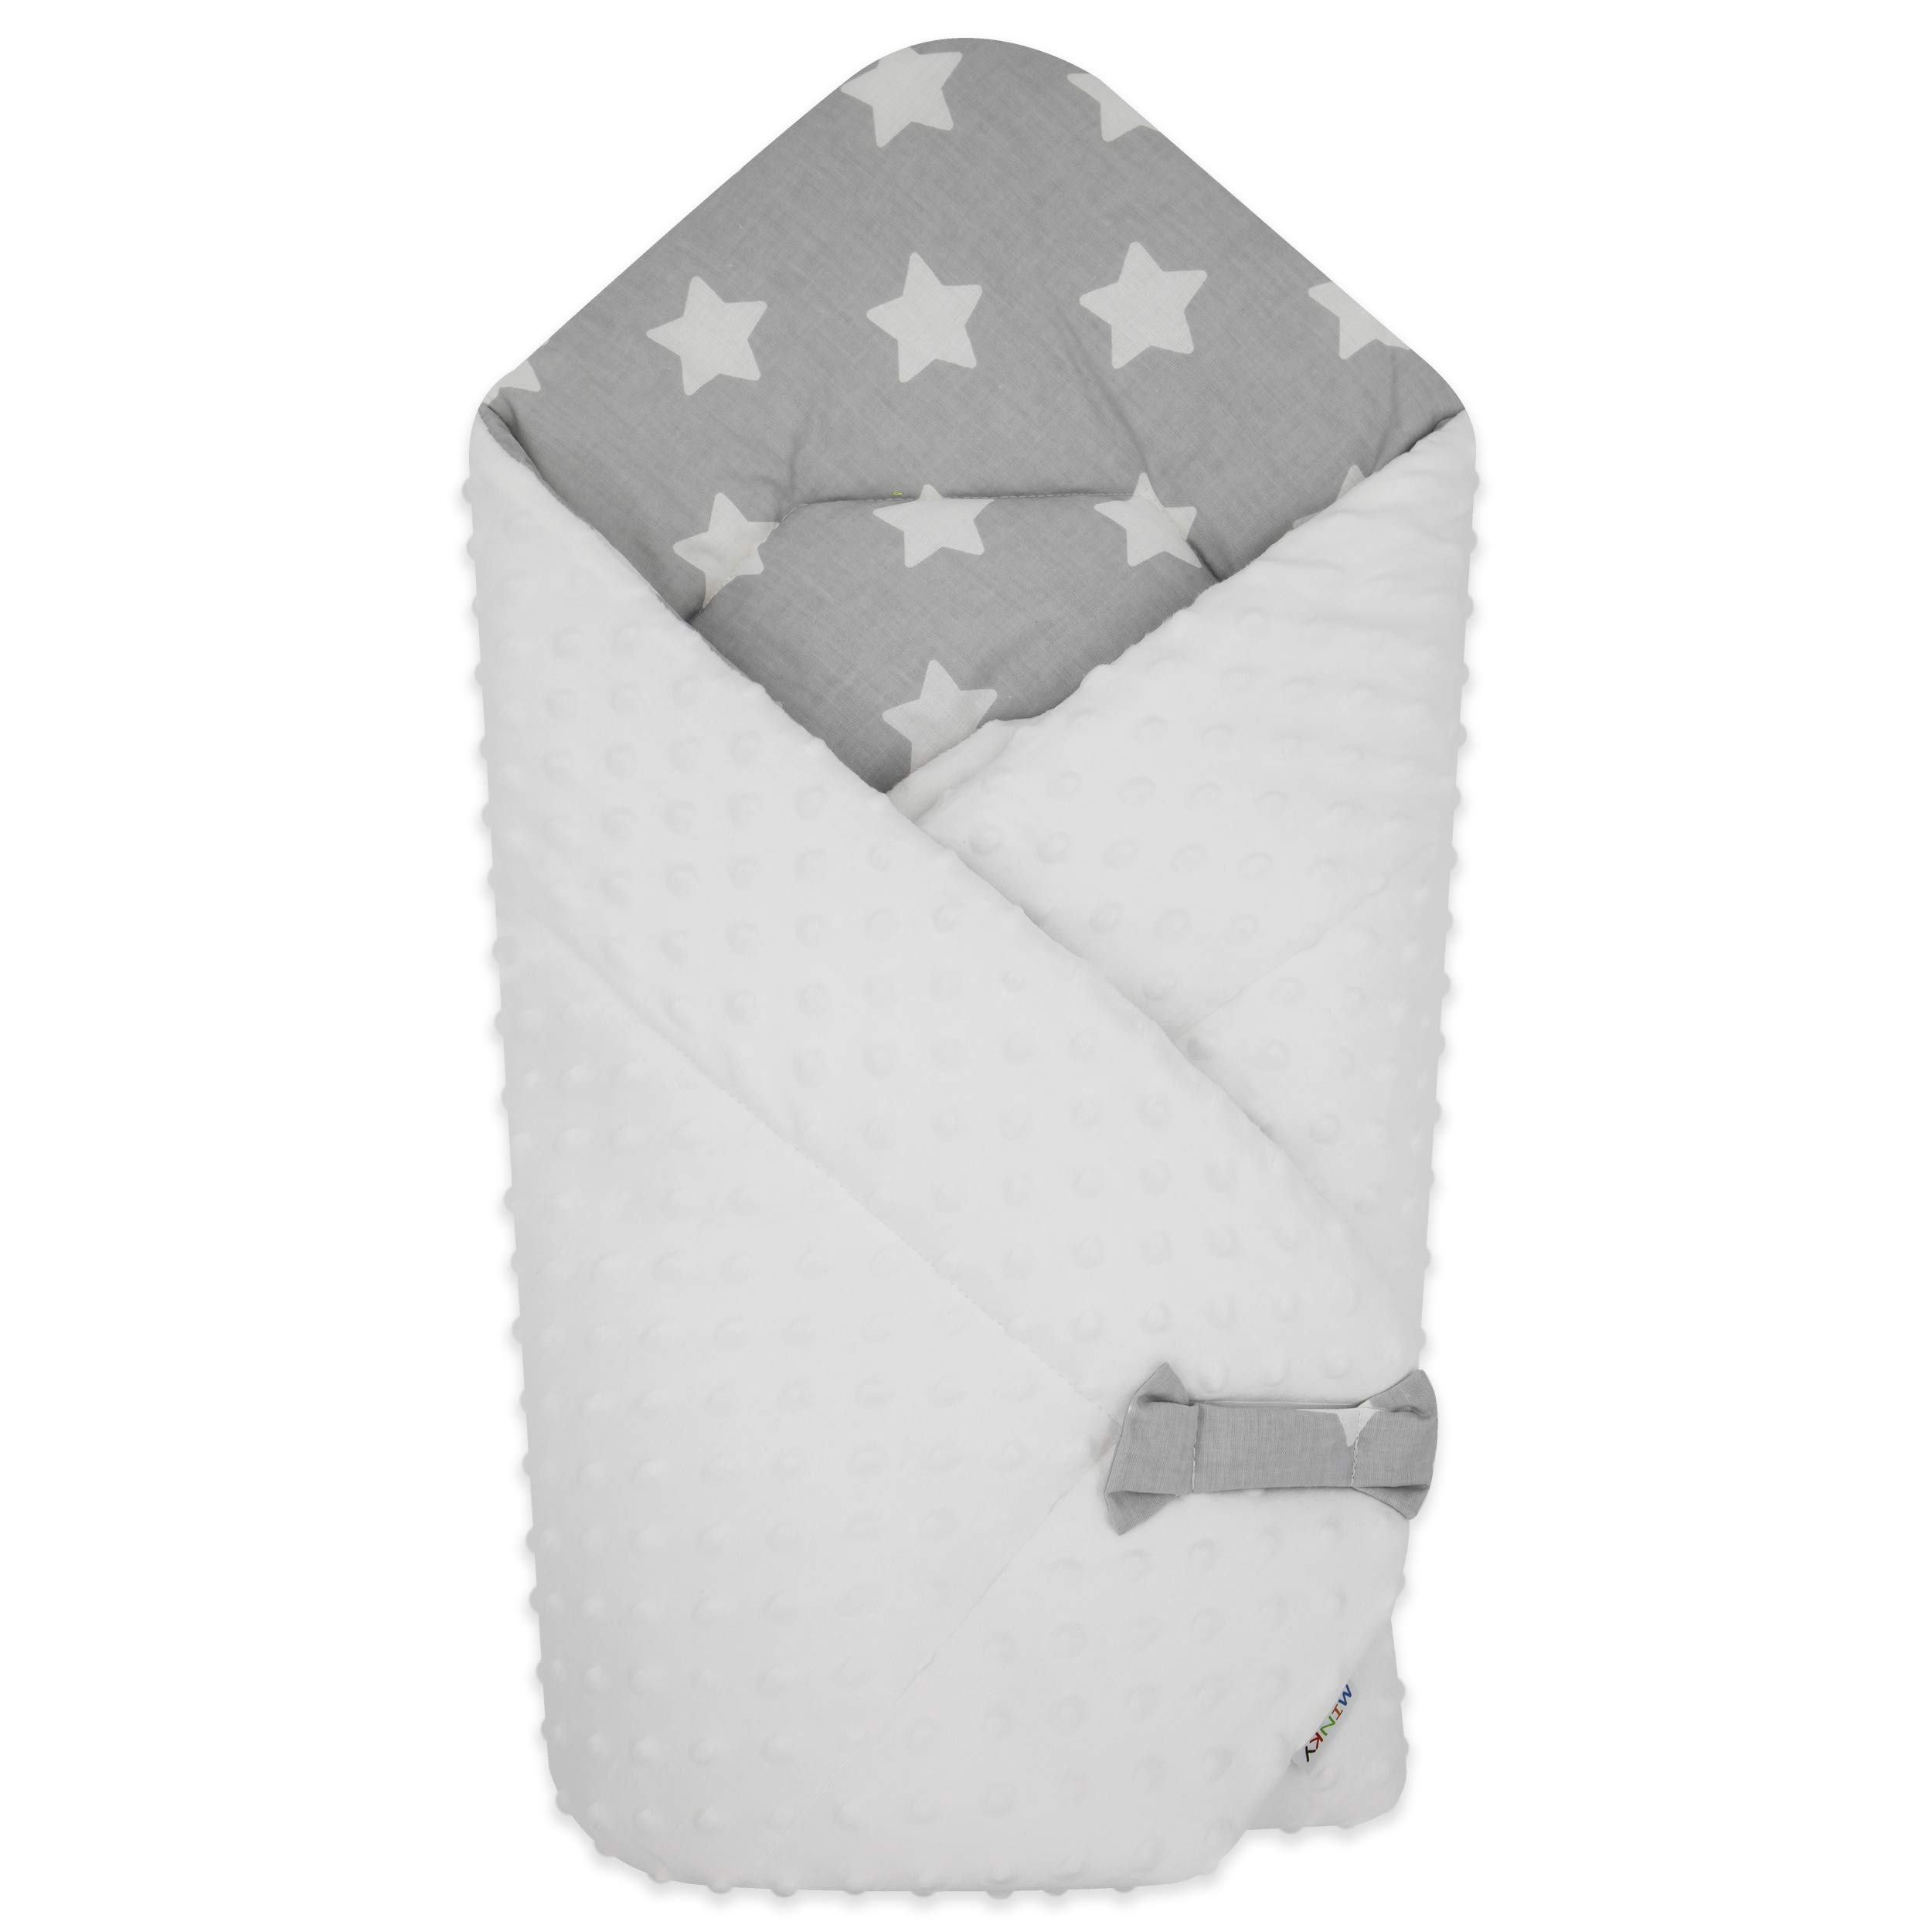 Baby Swaddle WRAP Newborn Infant Bedding Blanket Cotton Sleeping Bag Cotton WRAP Grey Stars on White Background